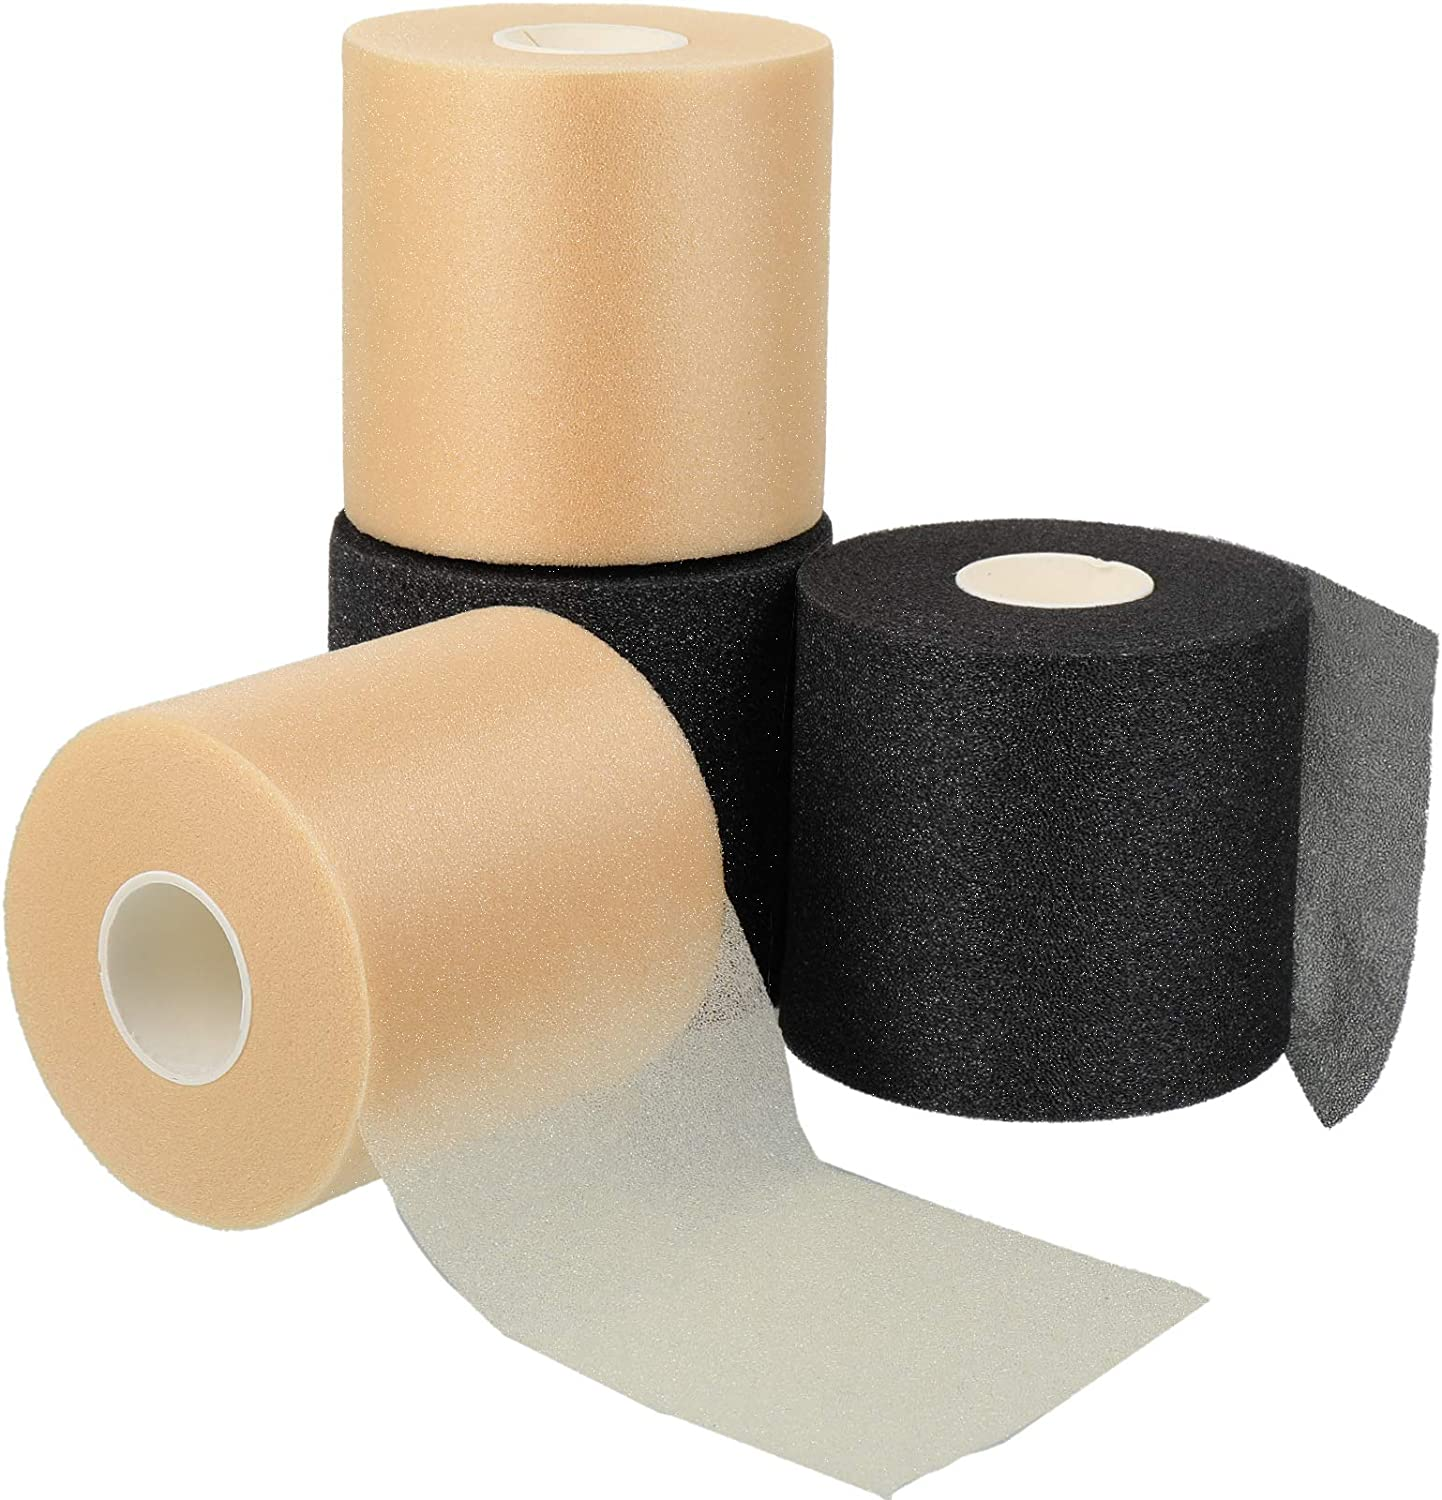 2.75 x 30 Yards Nuanchu 4 Pieces Foam Underwrap Athletic Foam Tap Sports Pre-wrap Athletic Tape for Ankles Wrists Hands and Knees in Beige and Black